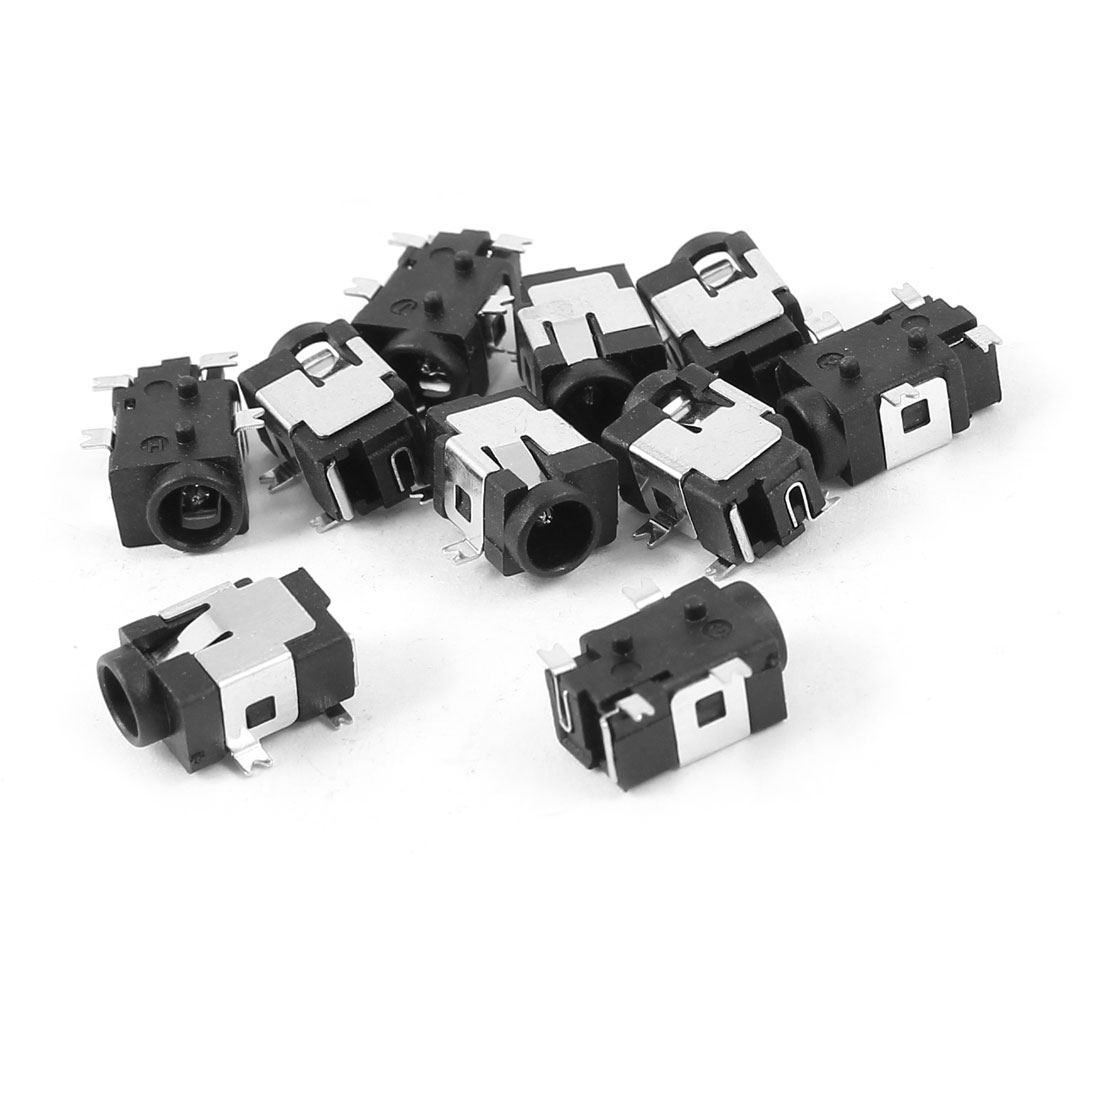 10 Pcs Black 4 Pin SMD 3.5mm DC Power Jack Socket PCB Mount Connector